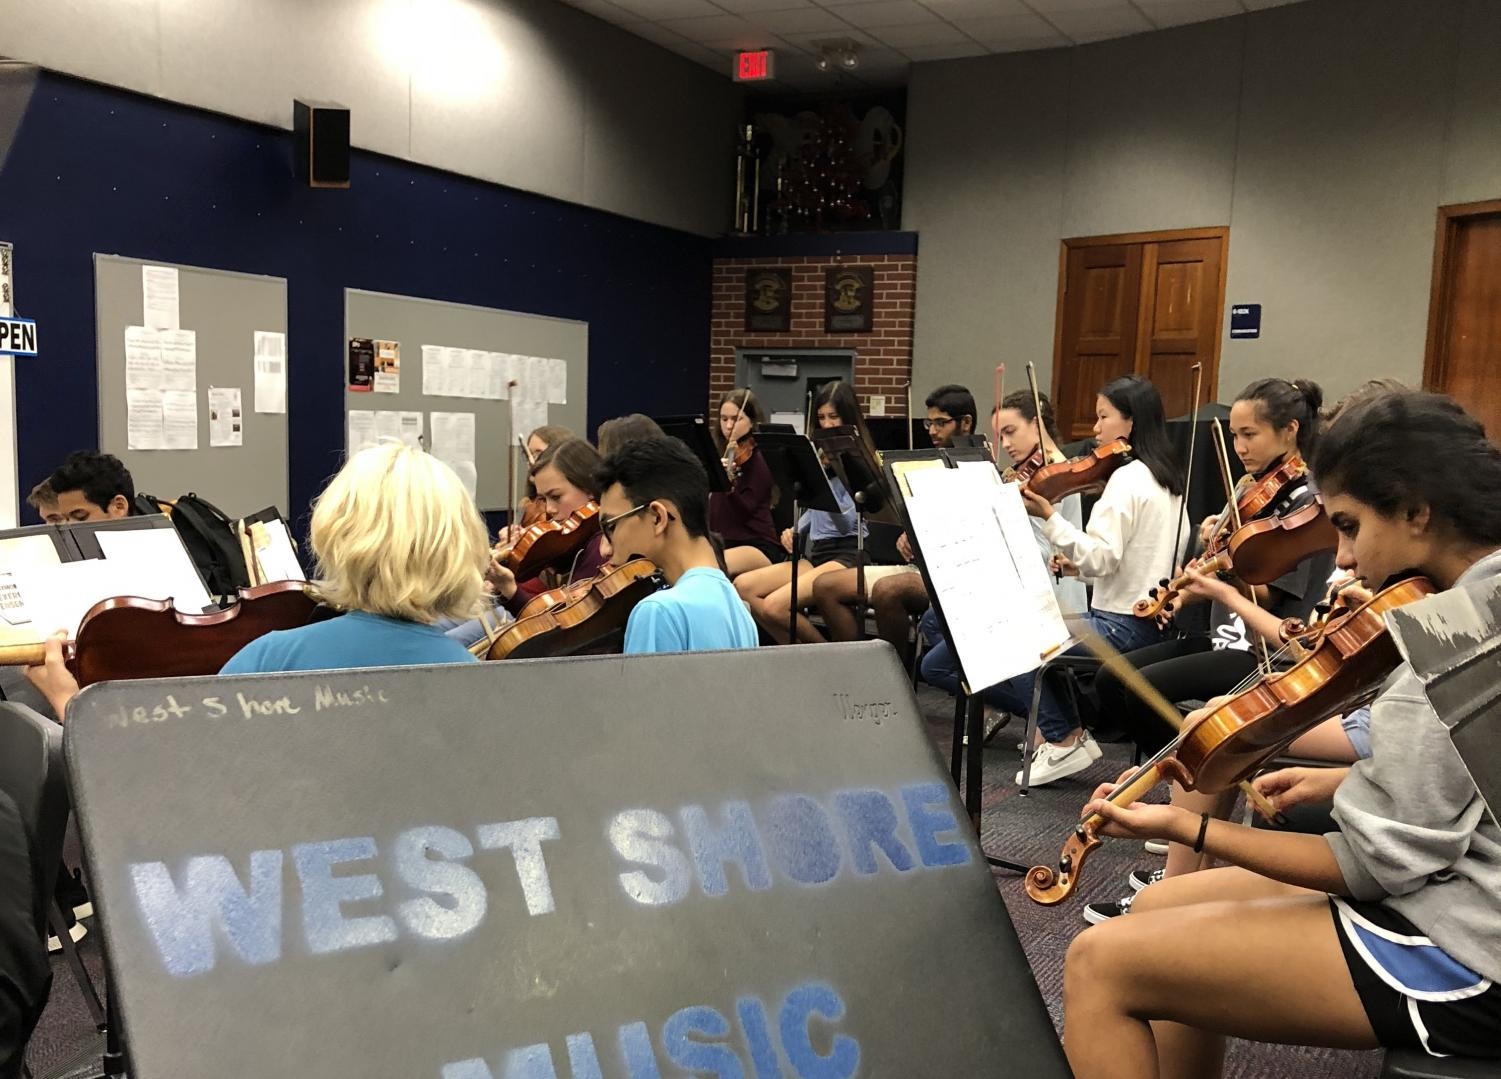 Orchestra students prepare music under Pinfield's direction